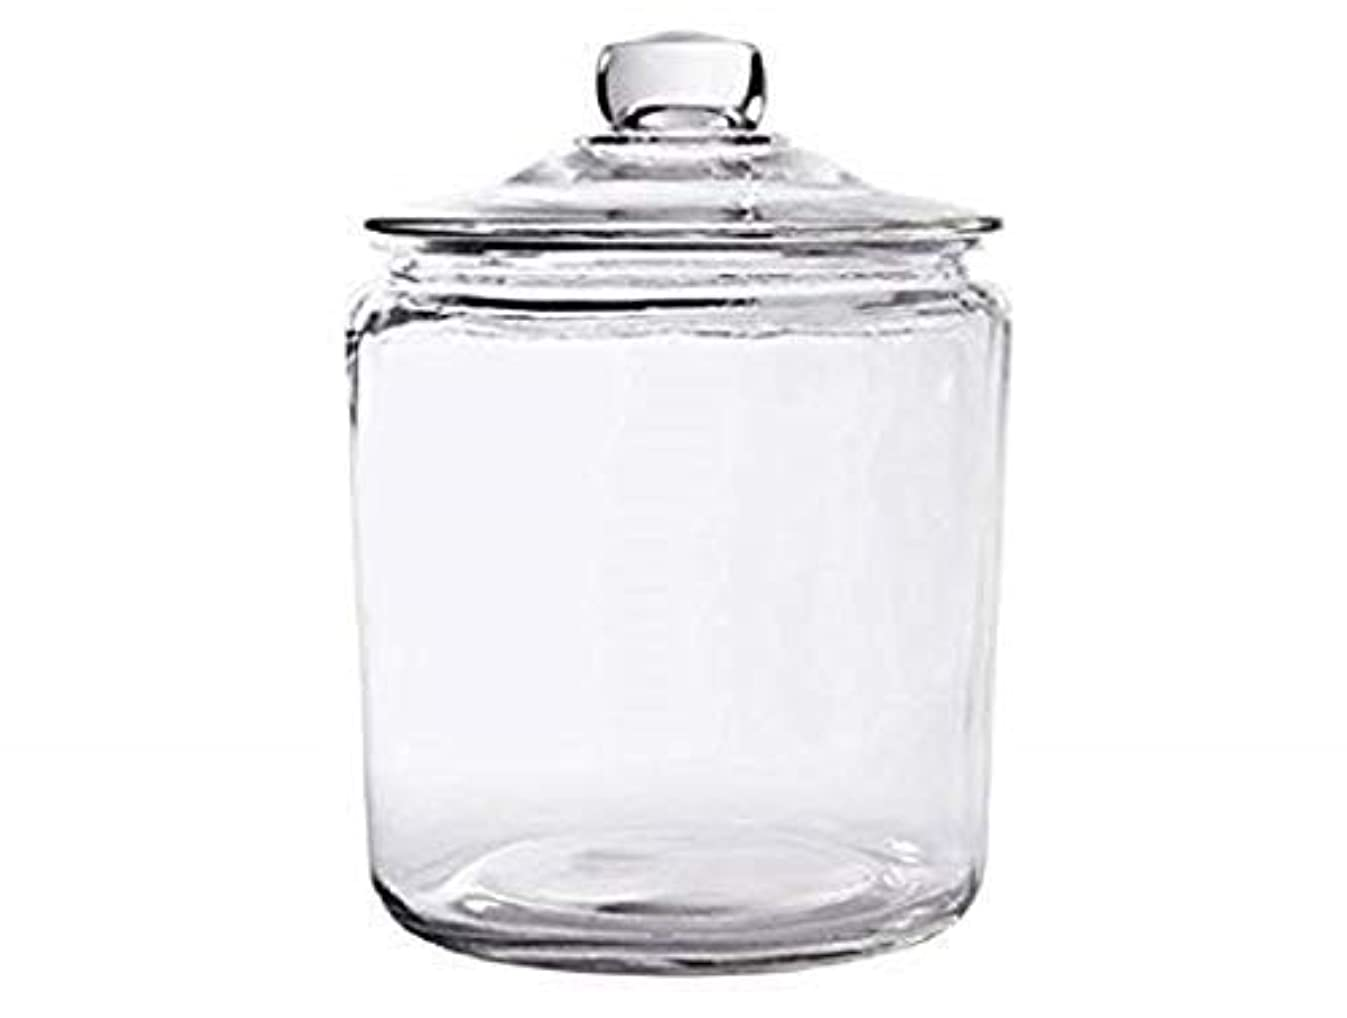 Glass Cookie Candy Penny Jar with Glass Lid, 1 Gallon Old Fashioned Clear Round Storage Container